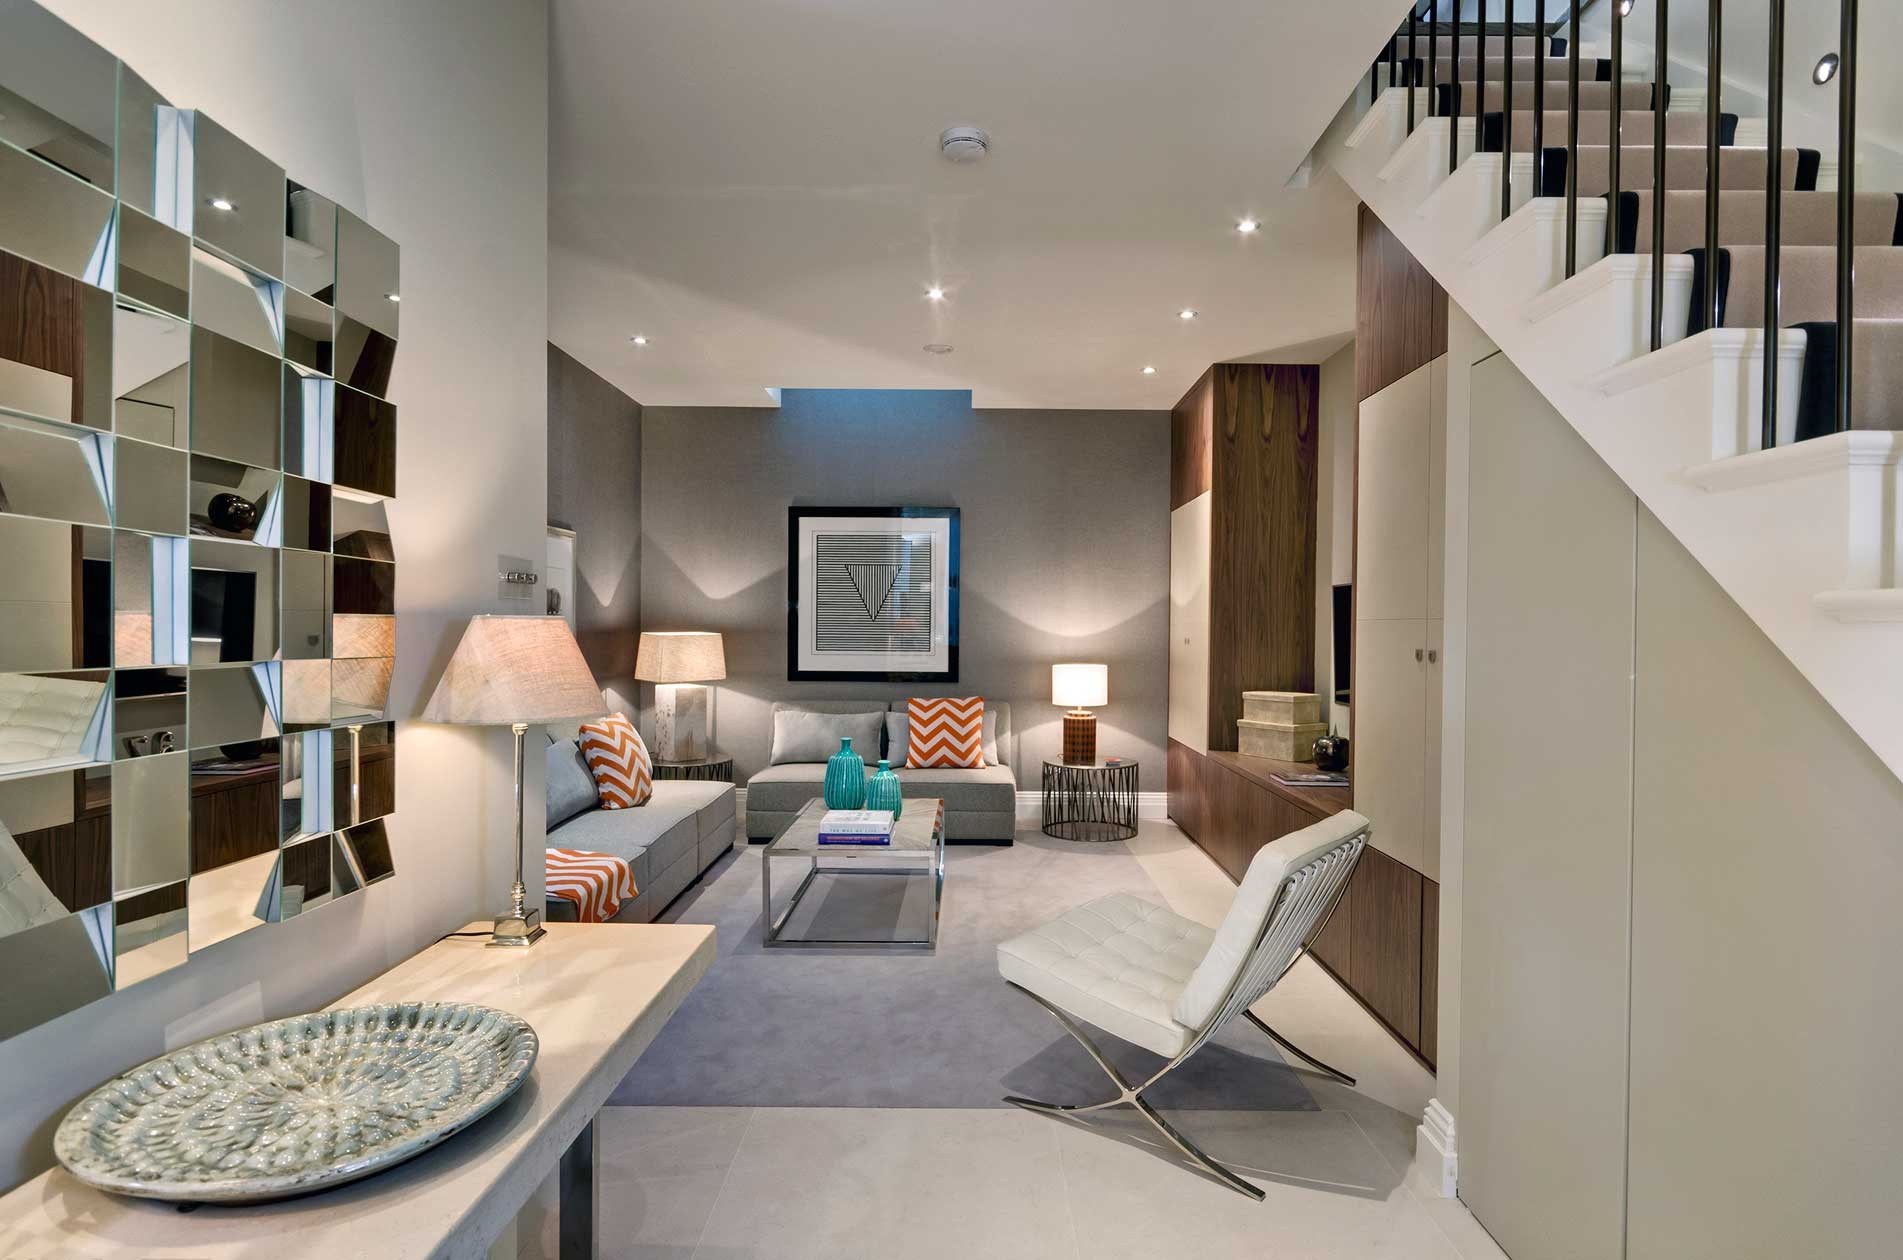 What Can You Expect From A Basement Refurbishment Project